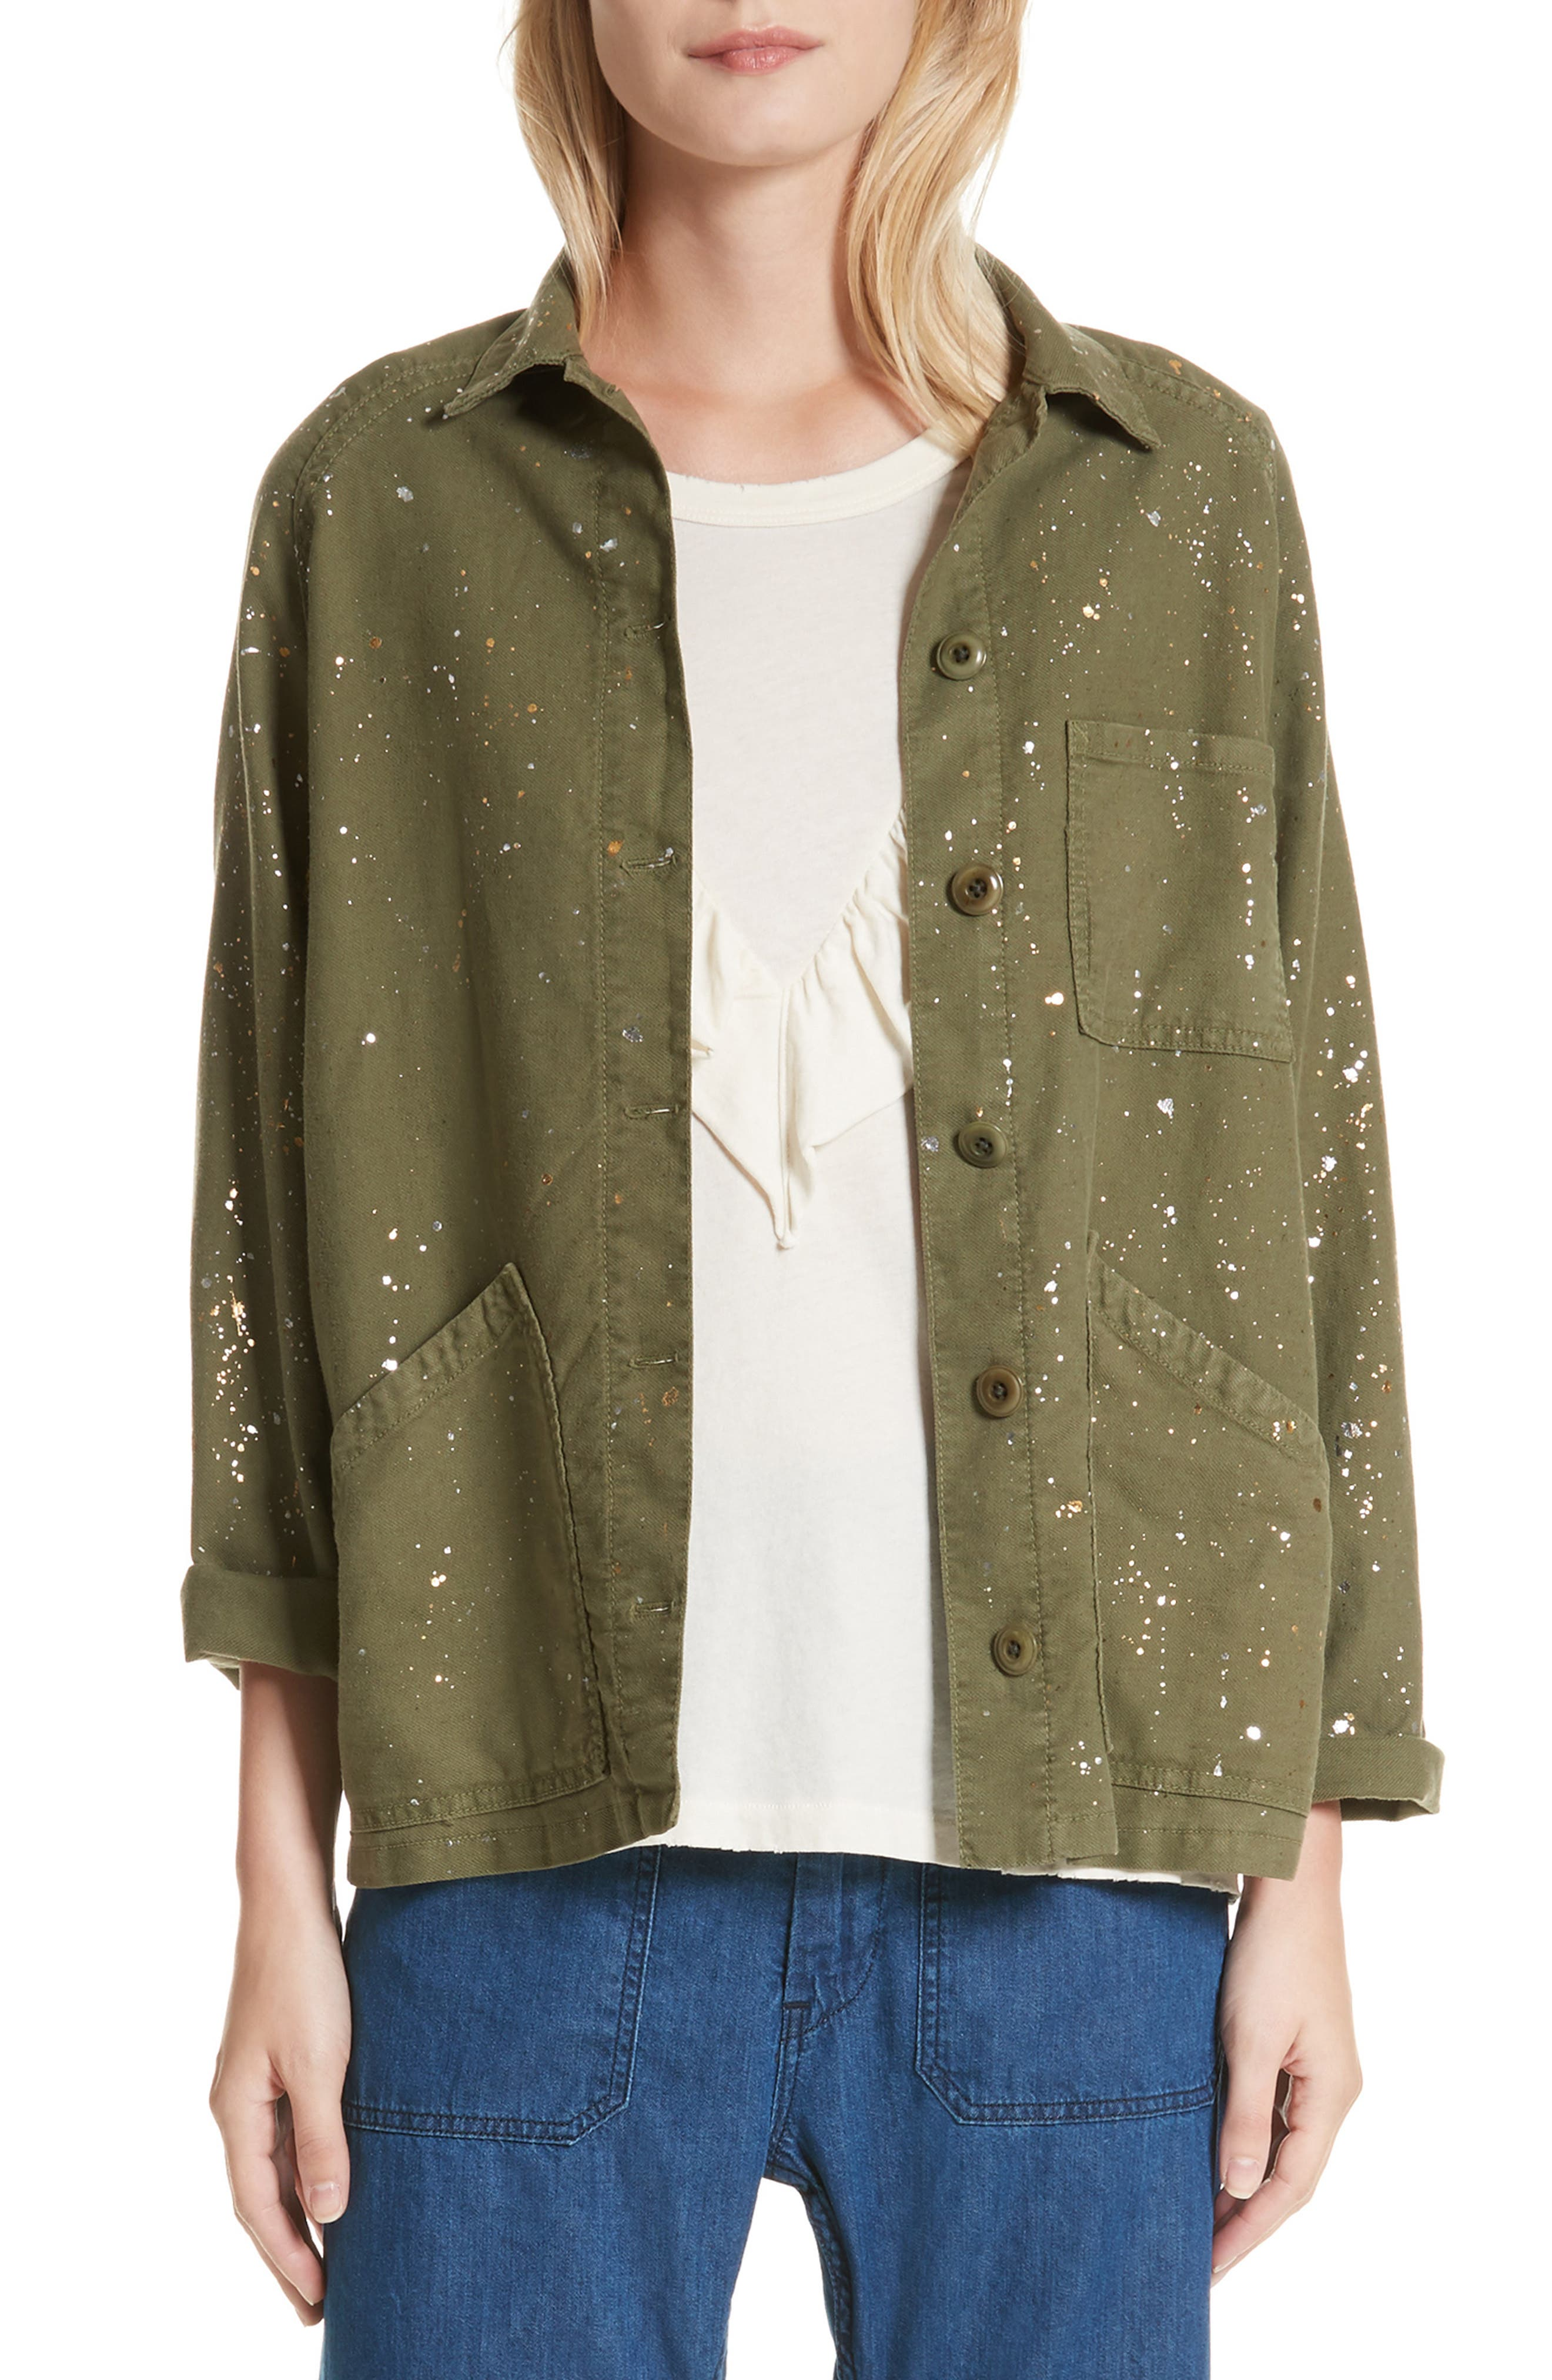 THE GREAT. The Field Metallic Speckle Jacket